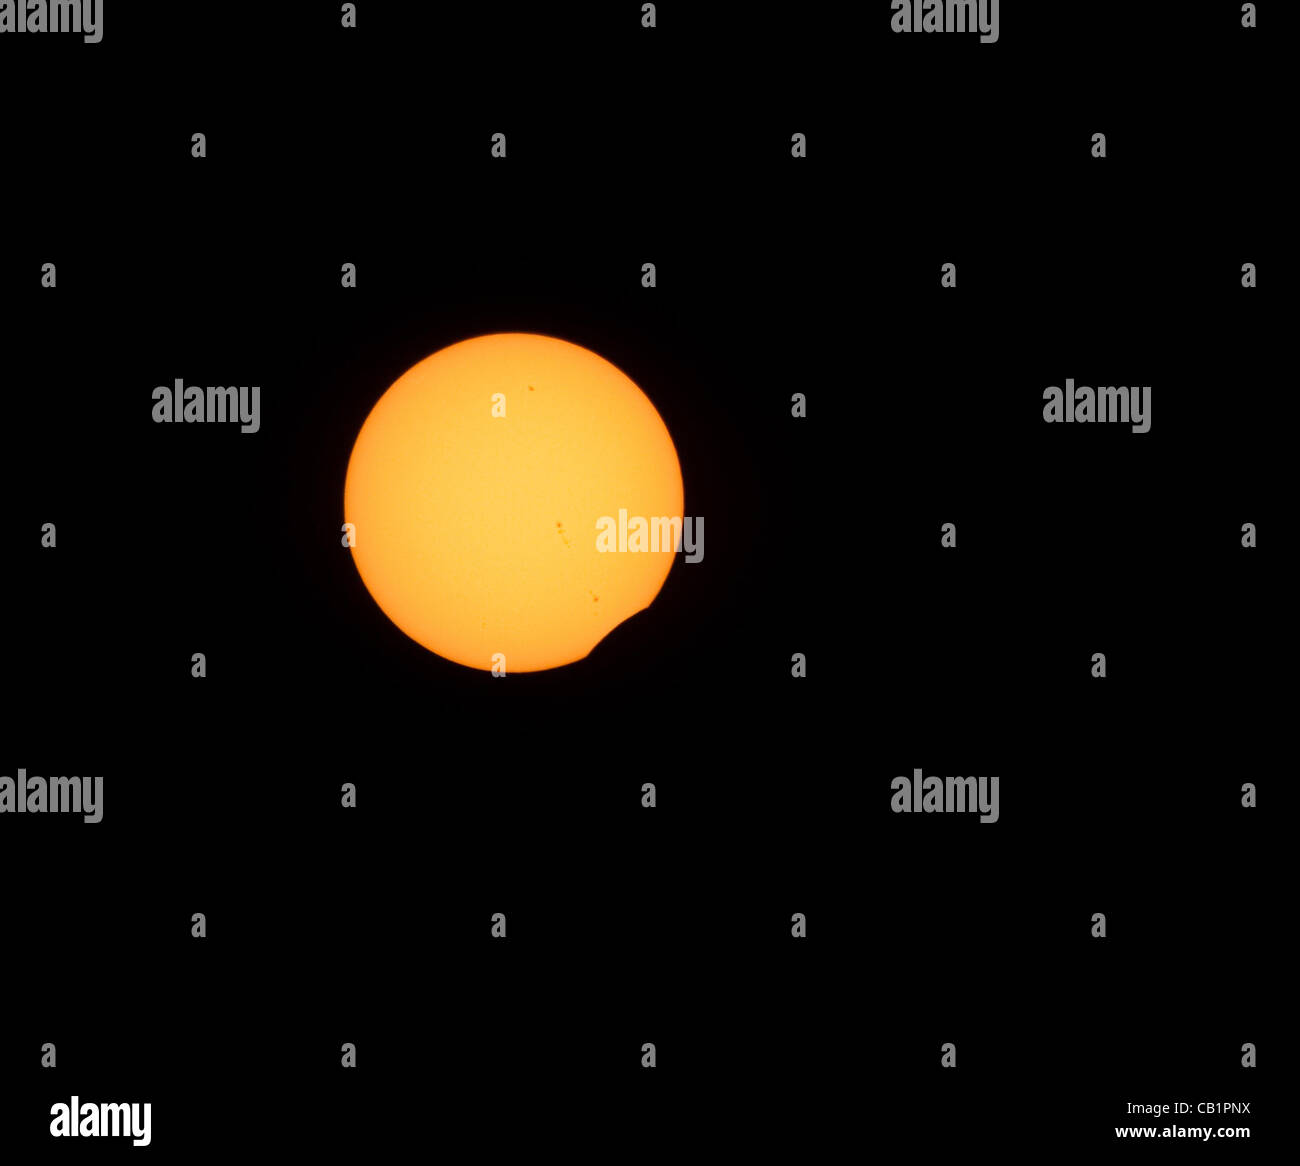 Sunday May 20 2012, the moon starts to pass in front of the sun on its was to create an annular eclipse as seen Stock Photo